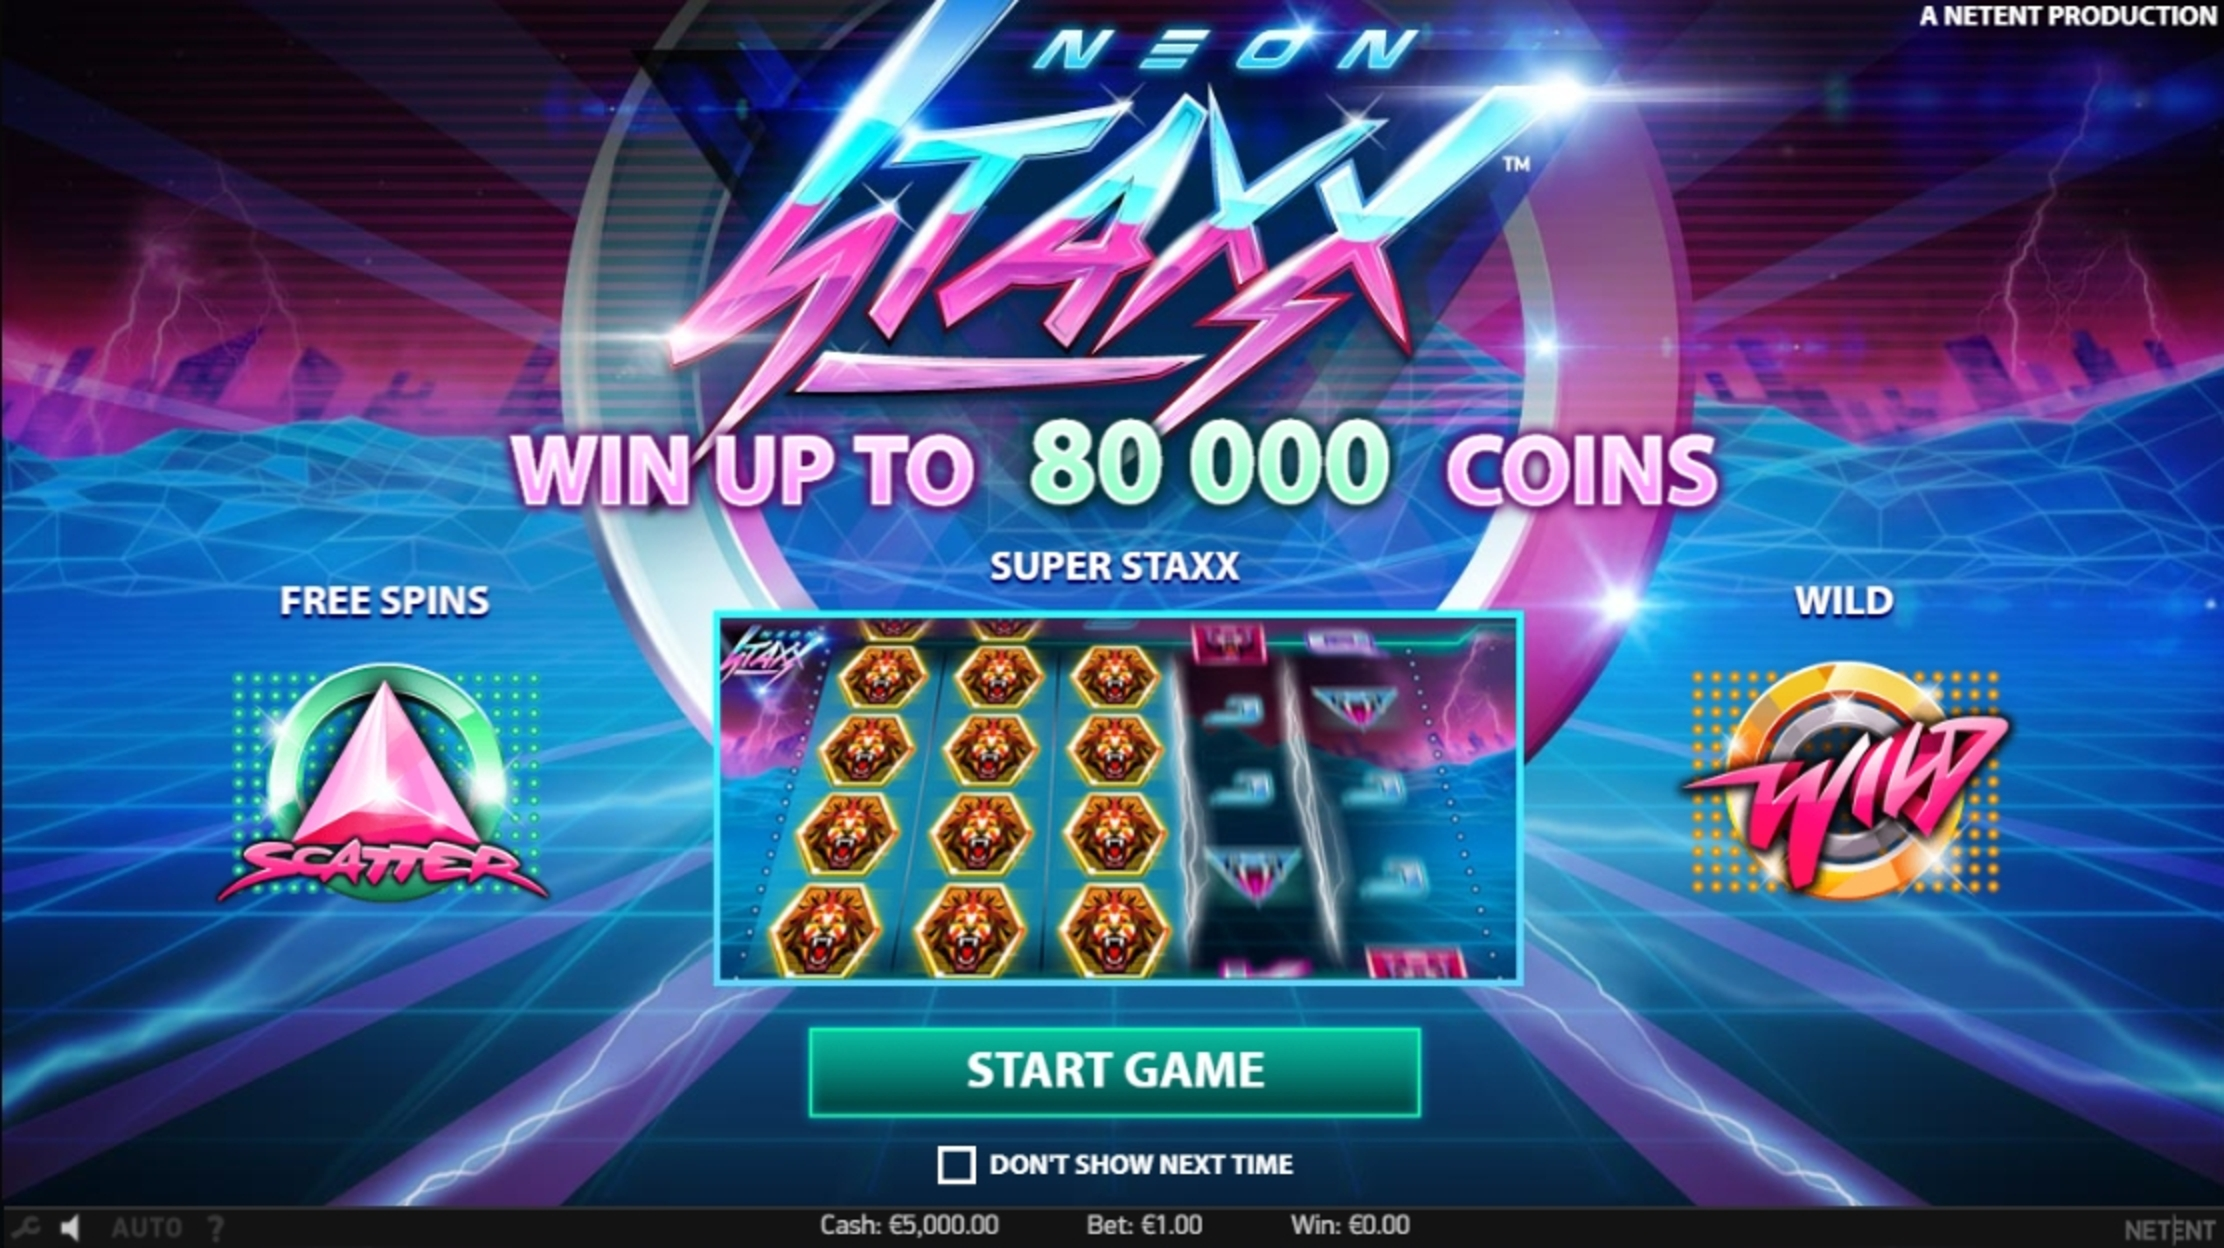 Play Neon Staxx Free Casino Slot Game by NetEnt